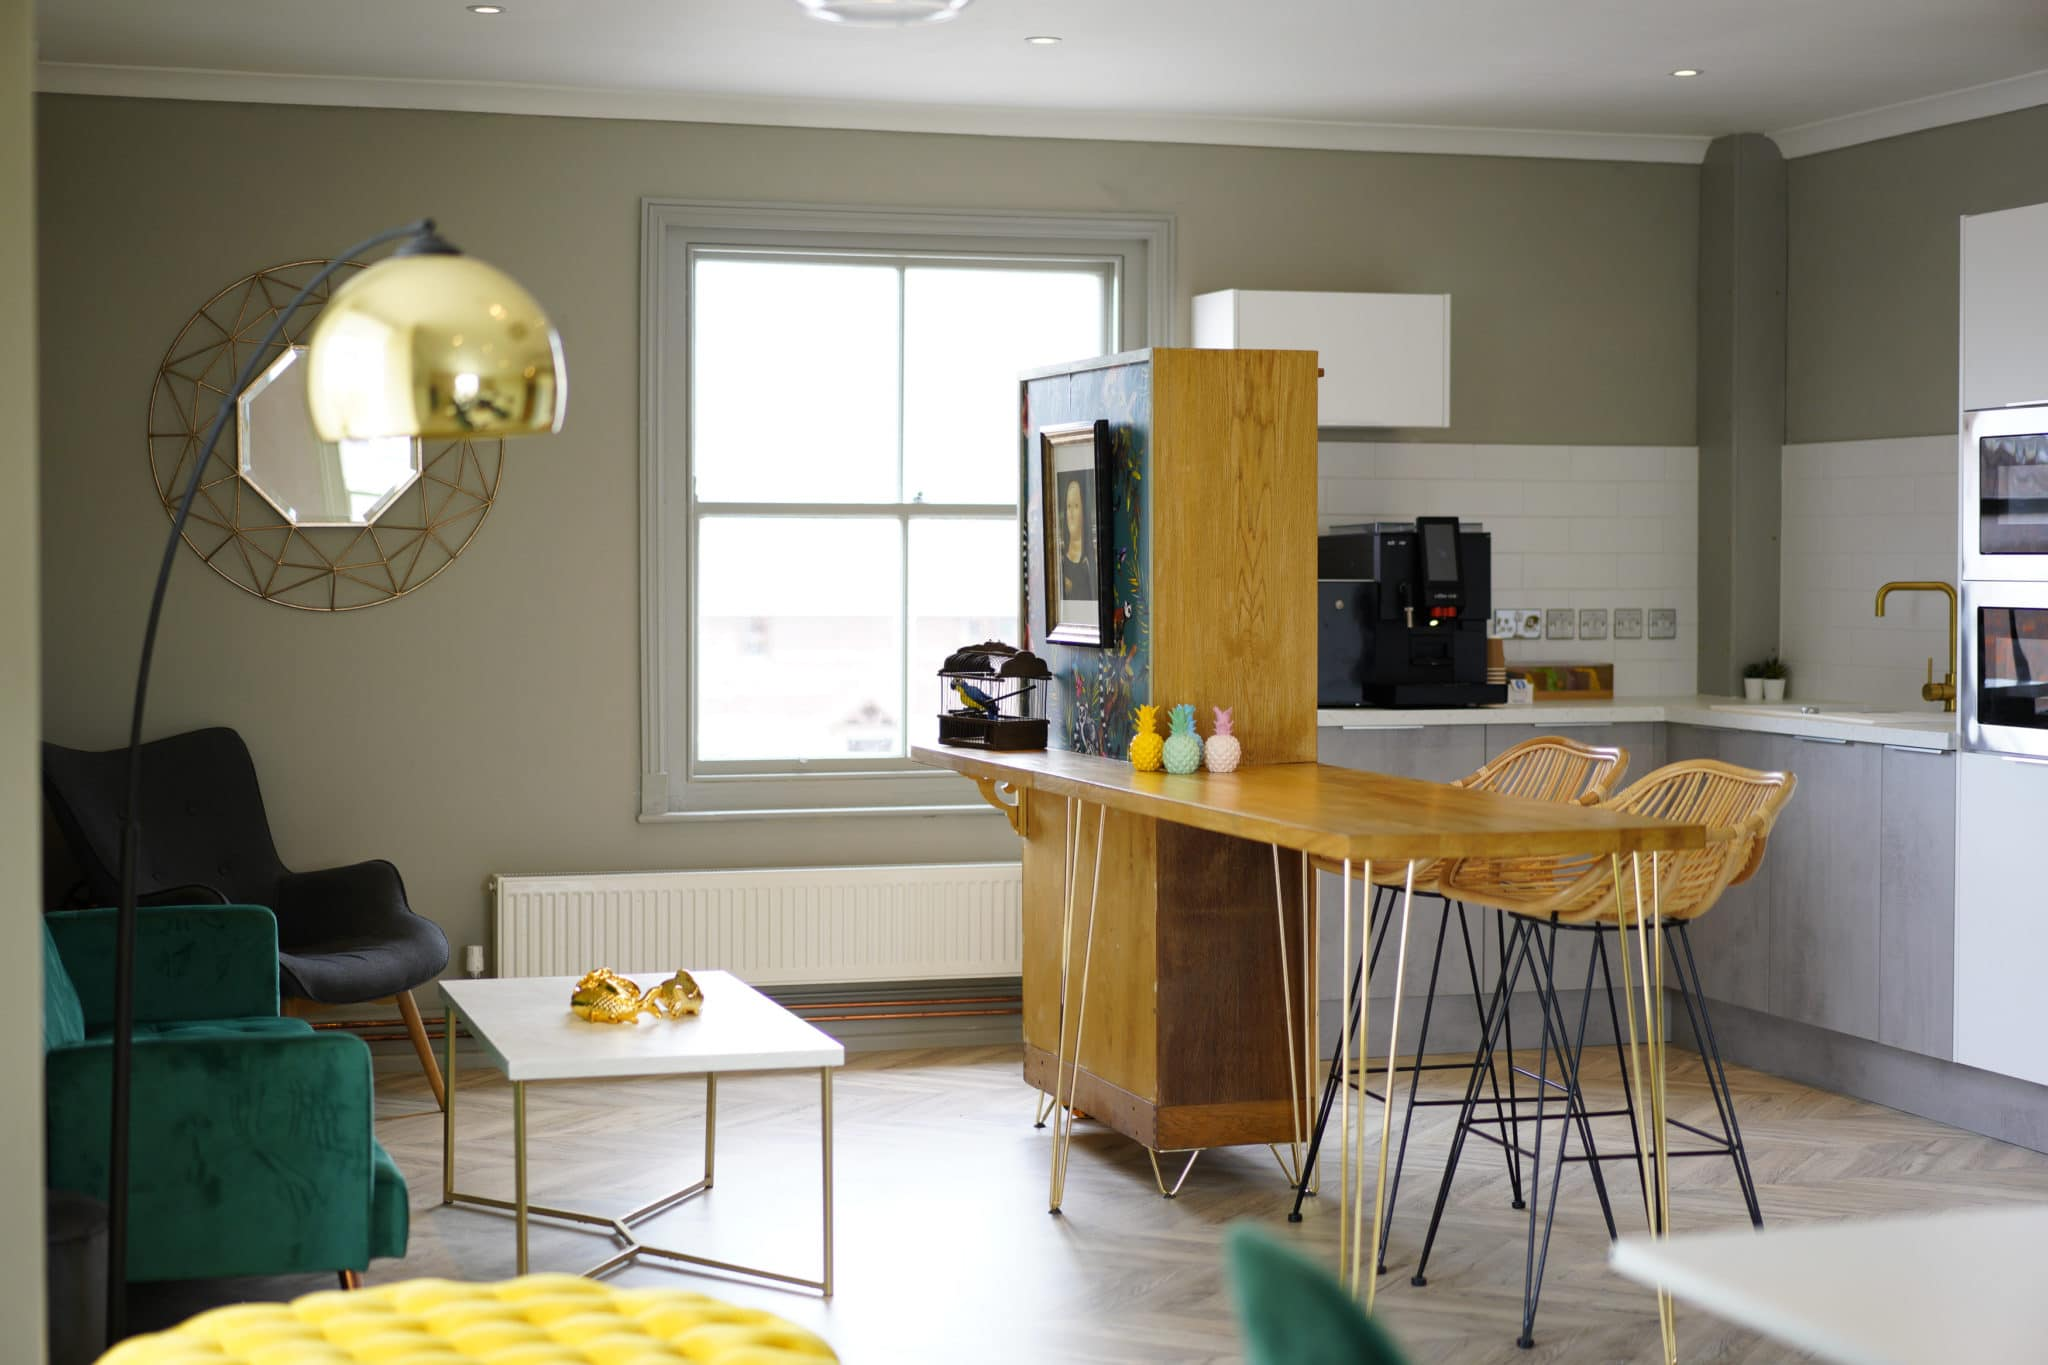 Breakout social area at The Nook, Honiton with chairs and a kitchenette